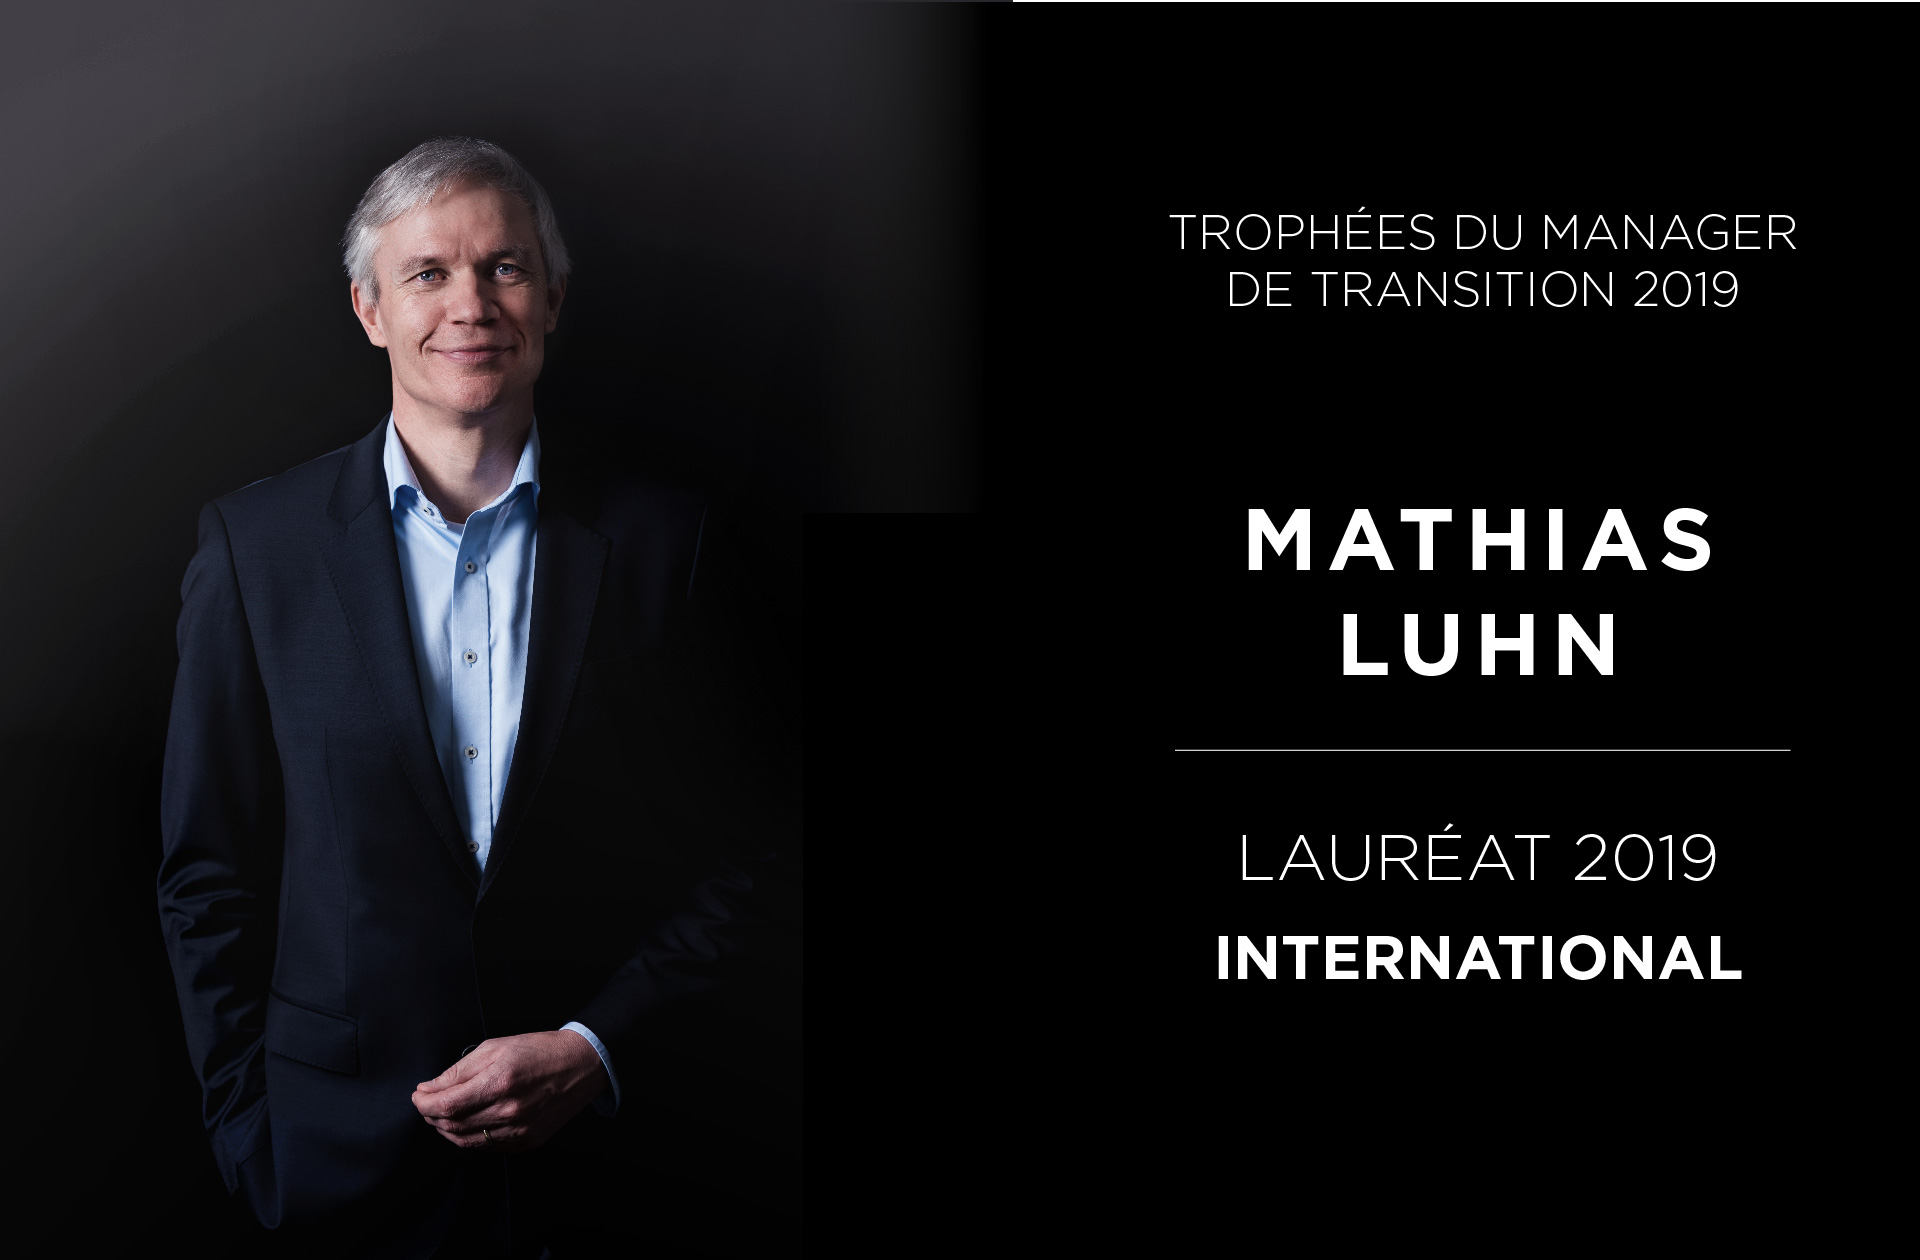 Portrait Mathias Luhn - Trophées du Manager de Transition 2019 - Valtus Management de transition